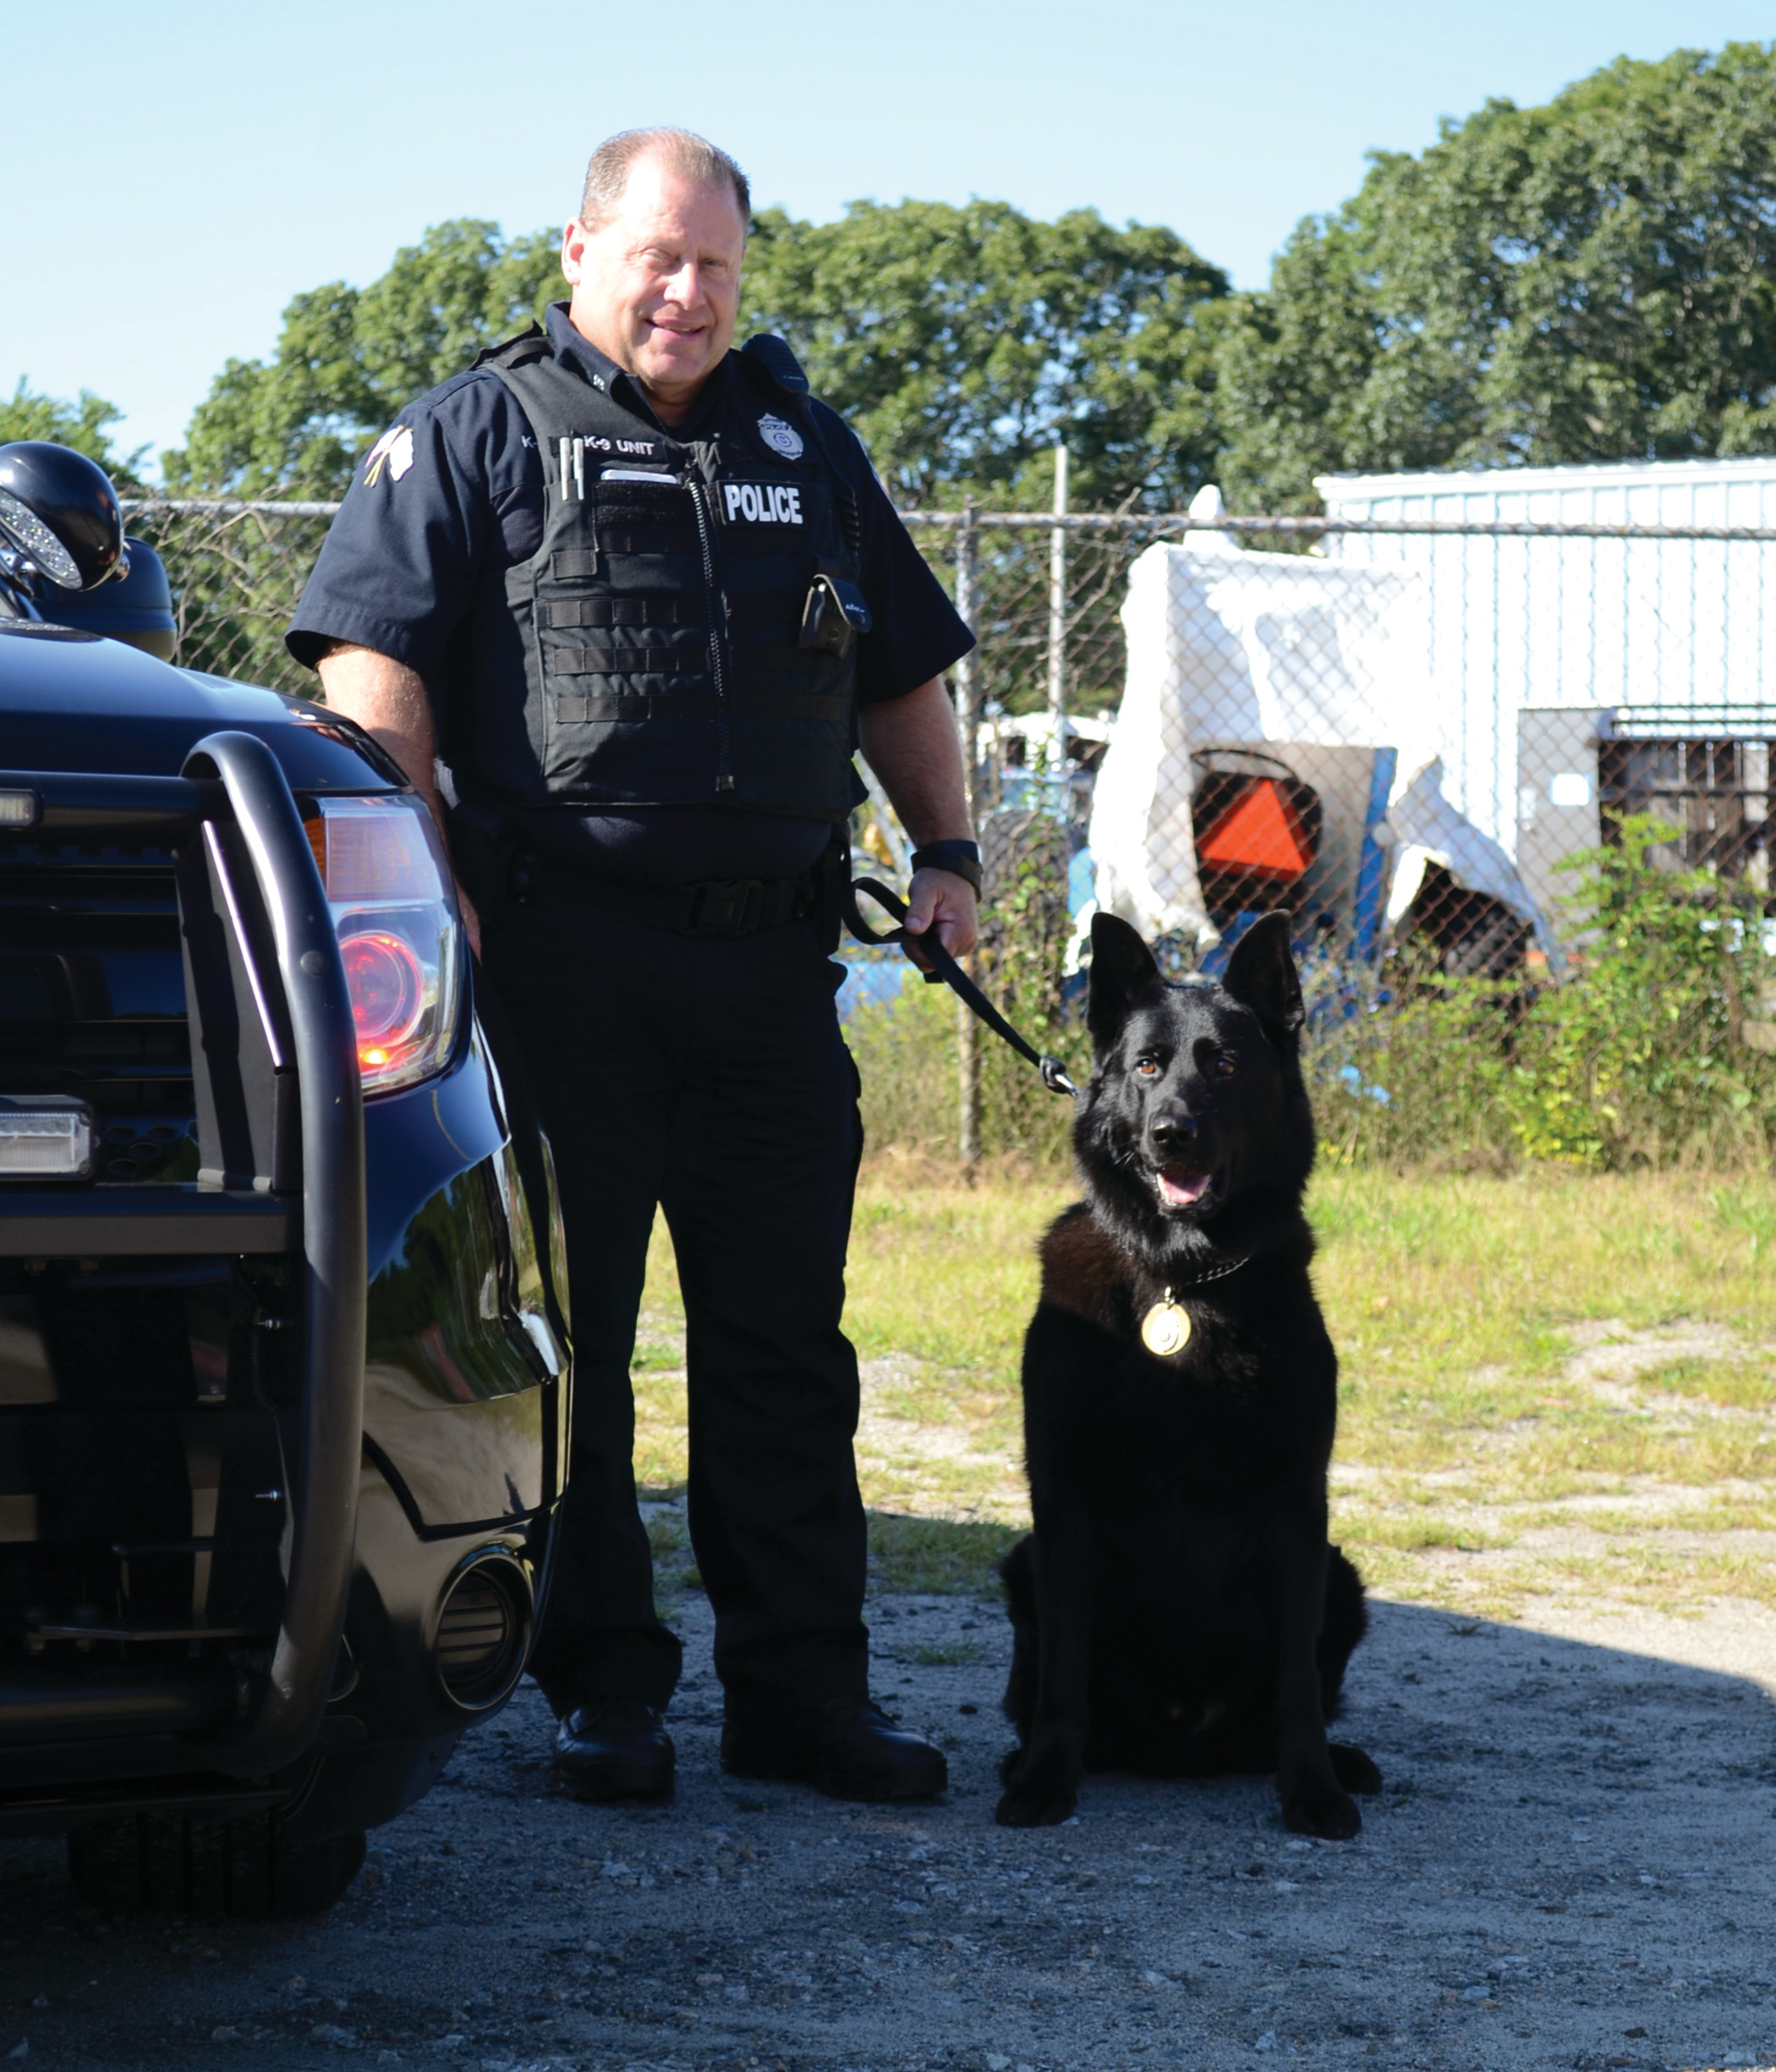 FOXTROT: K-9 officer Fox, an all-black German Shepherd, standing with his human partner, Officer Paul Wells.